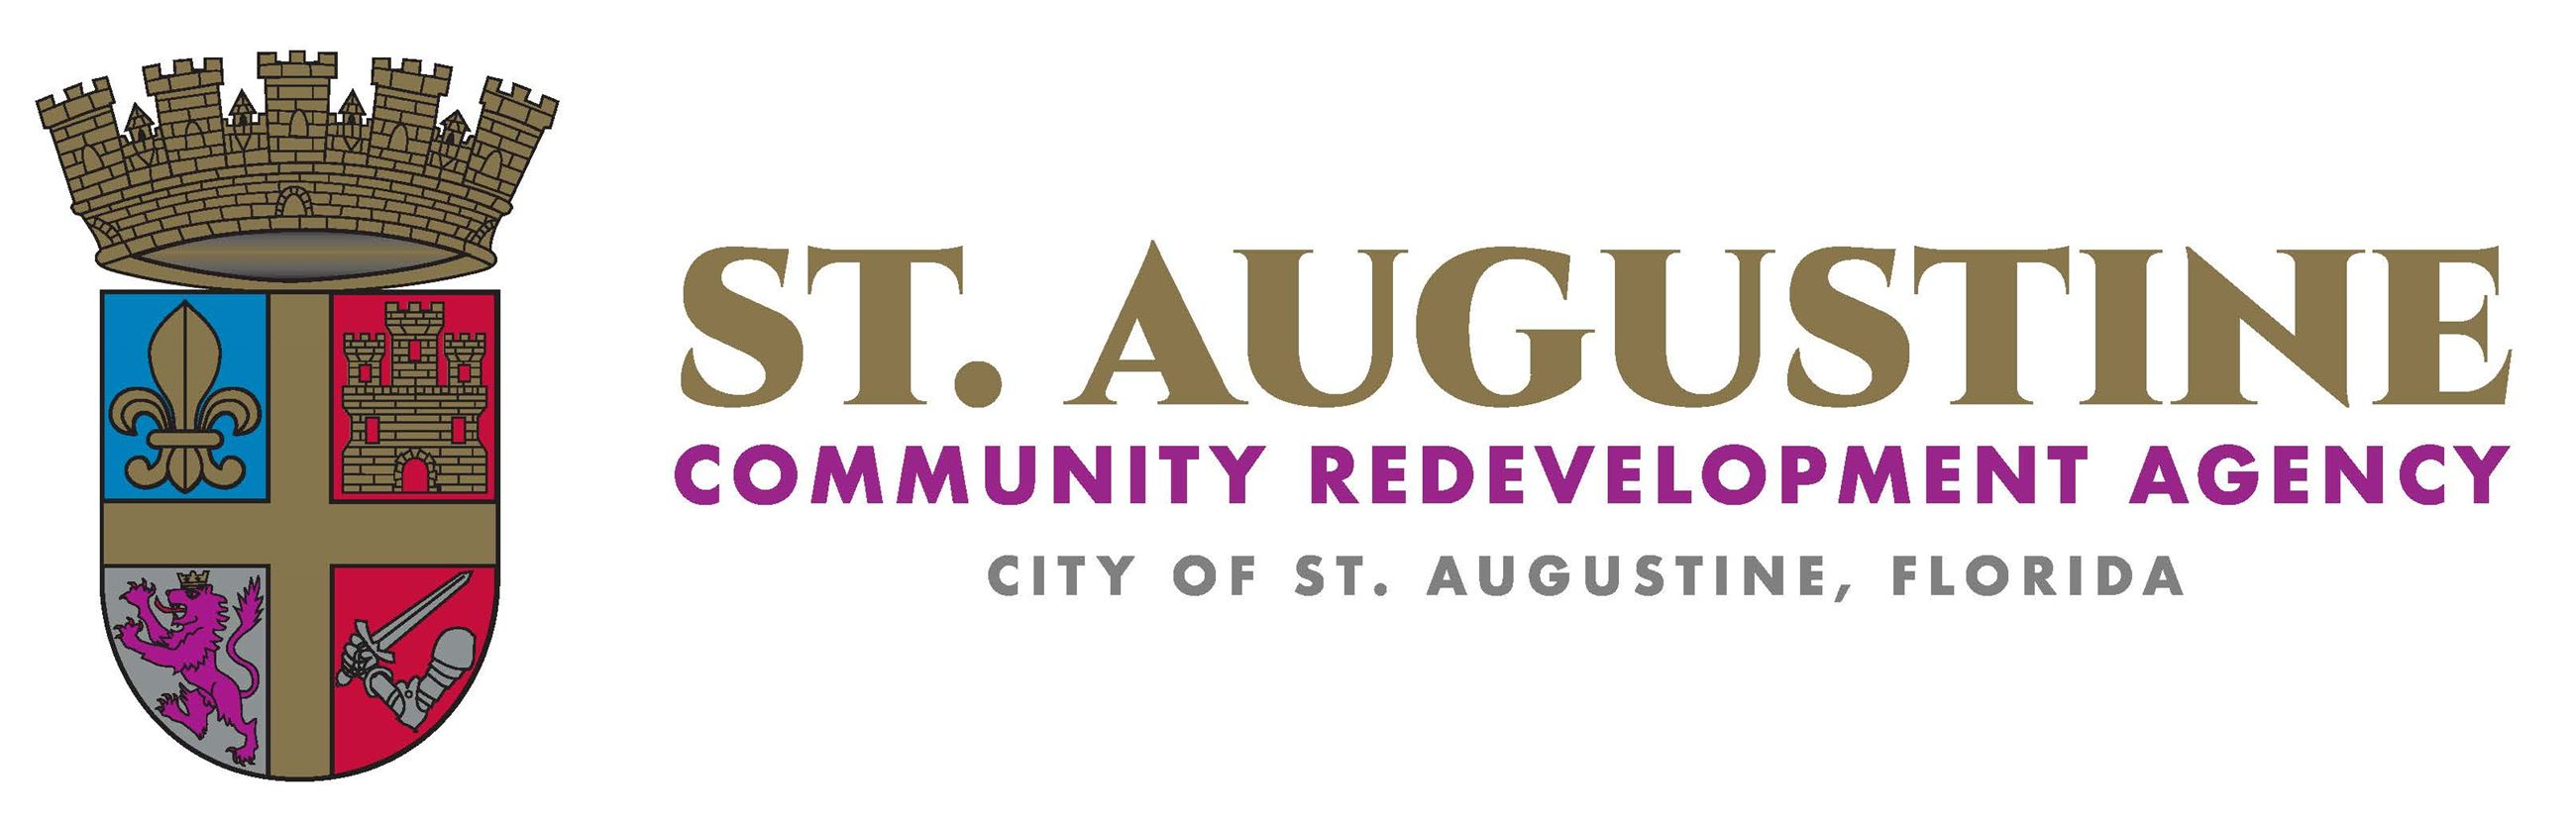 Community Redevelopment Agency